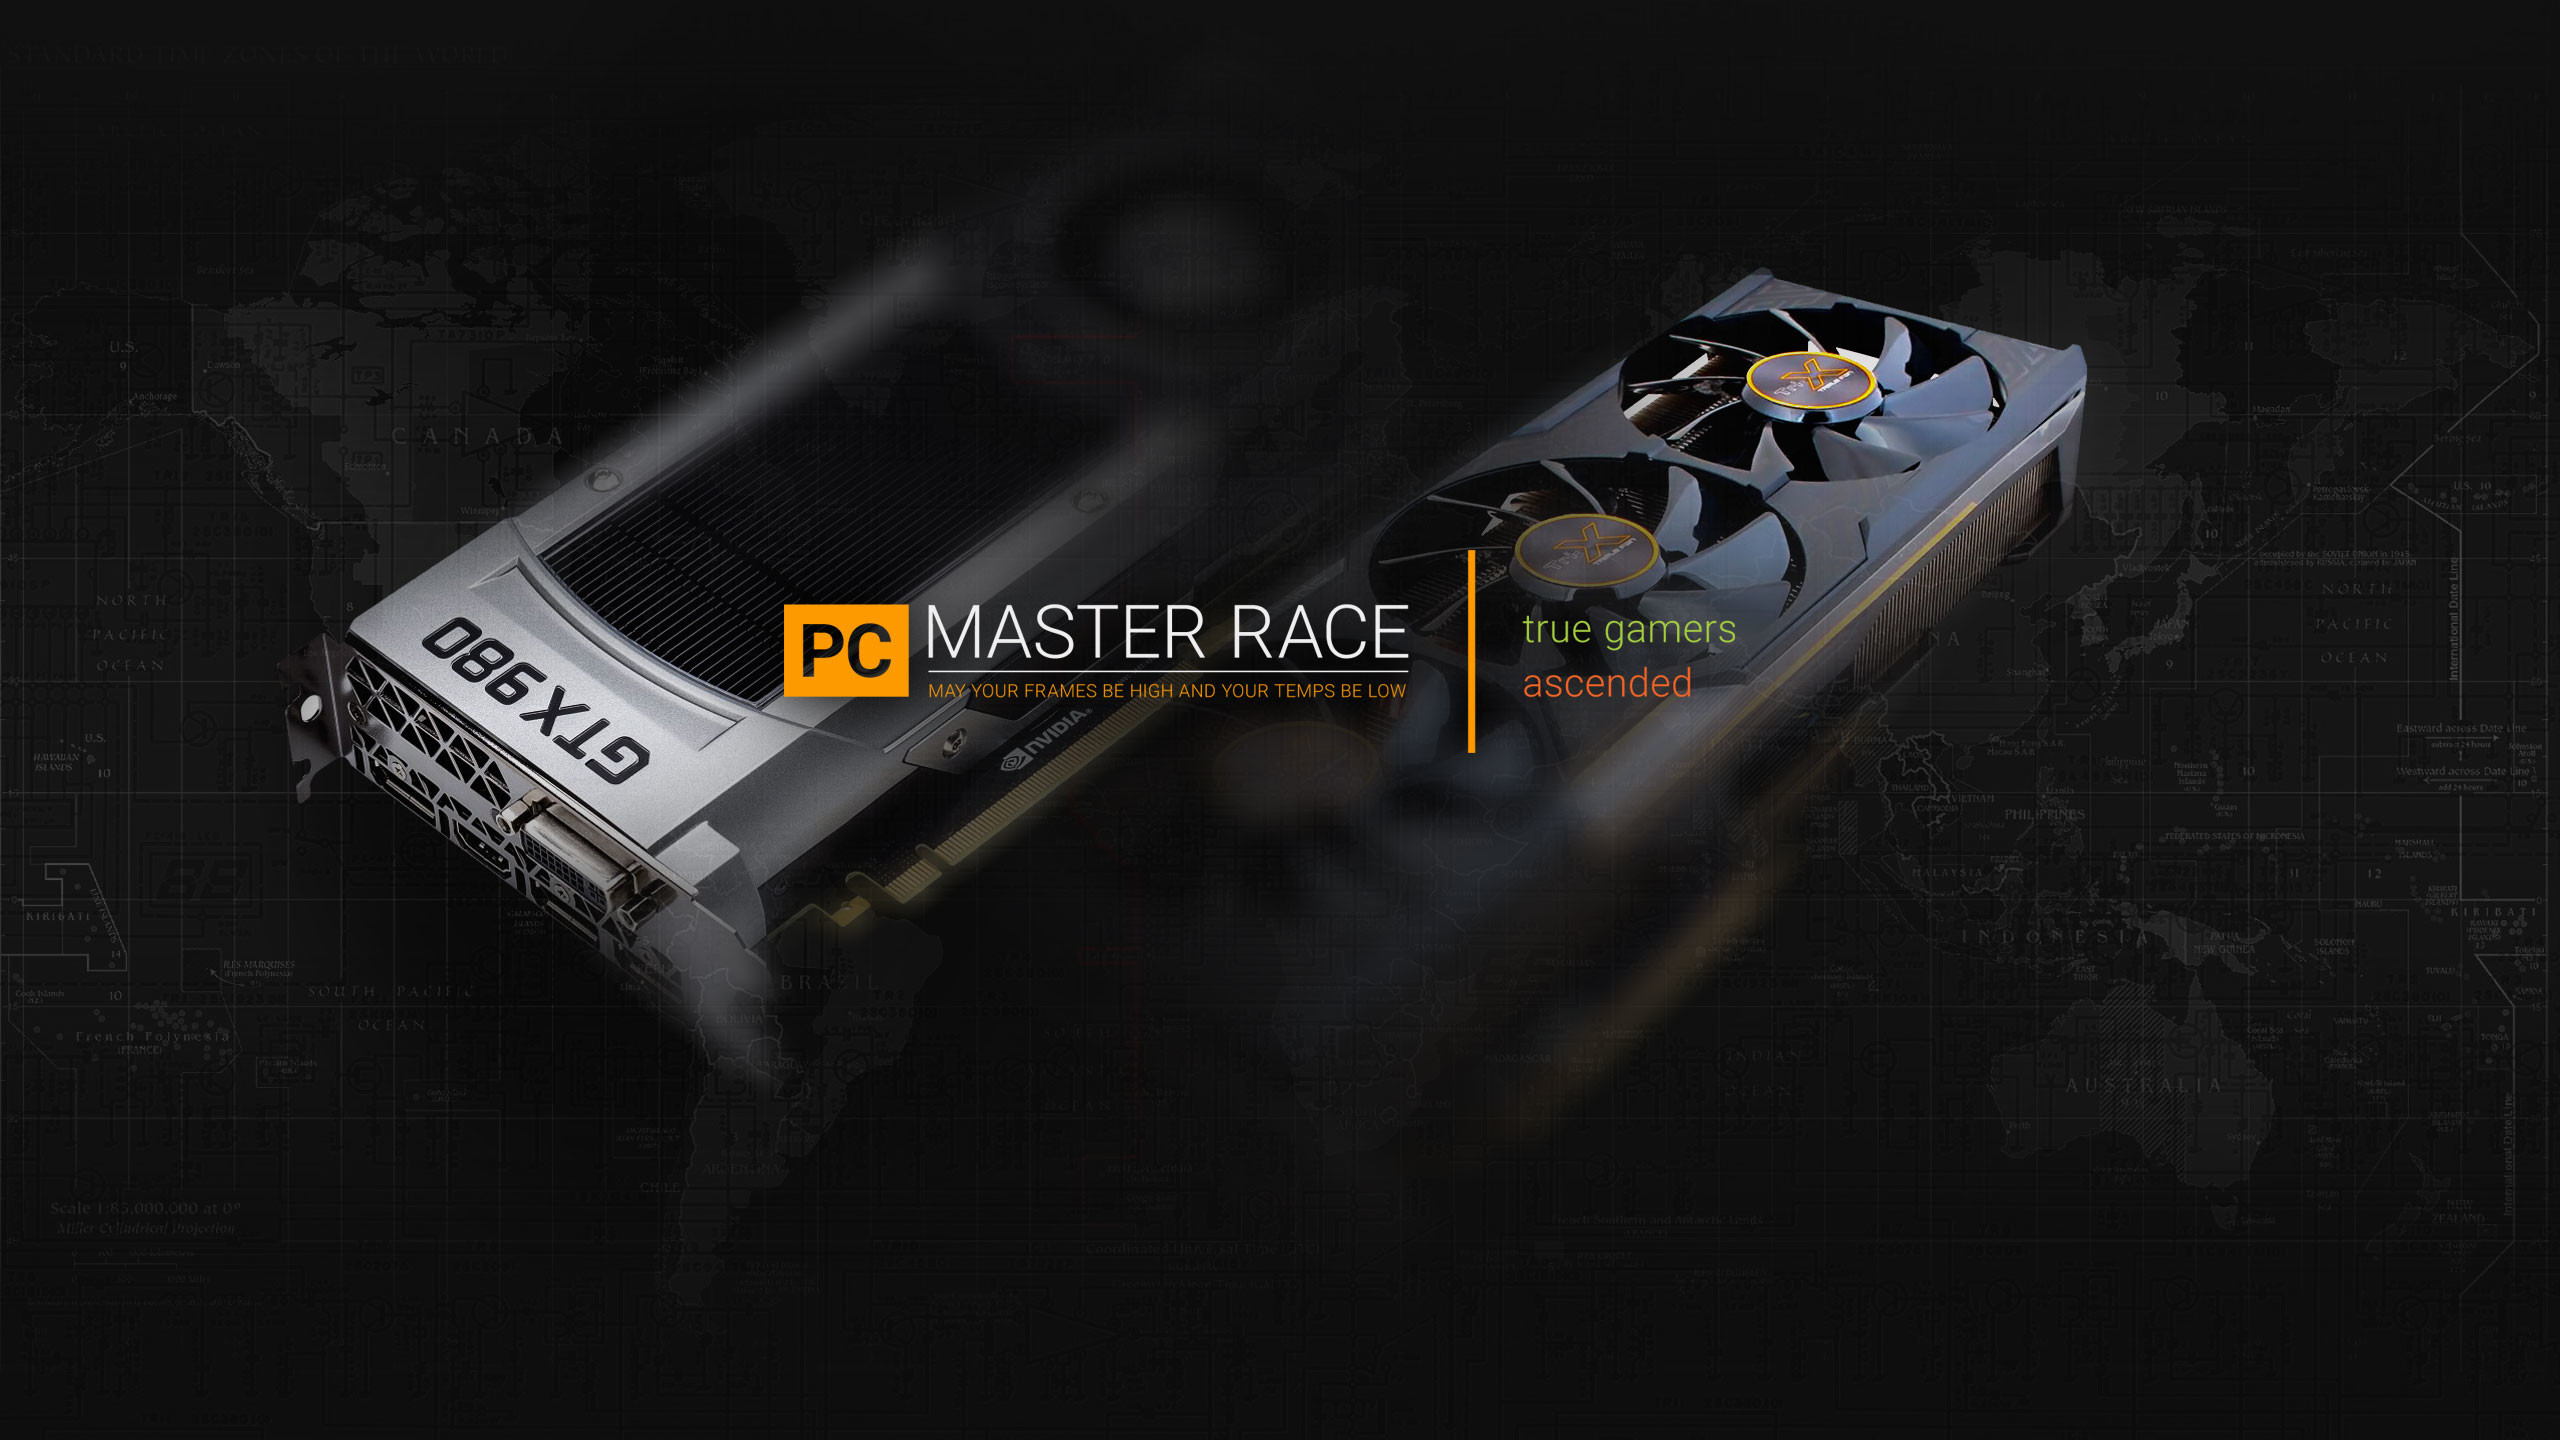 JustMasterRaceThingsPCMR Nvidia And AMD Wallpaper …